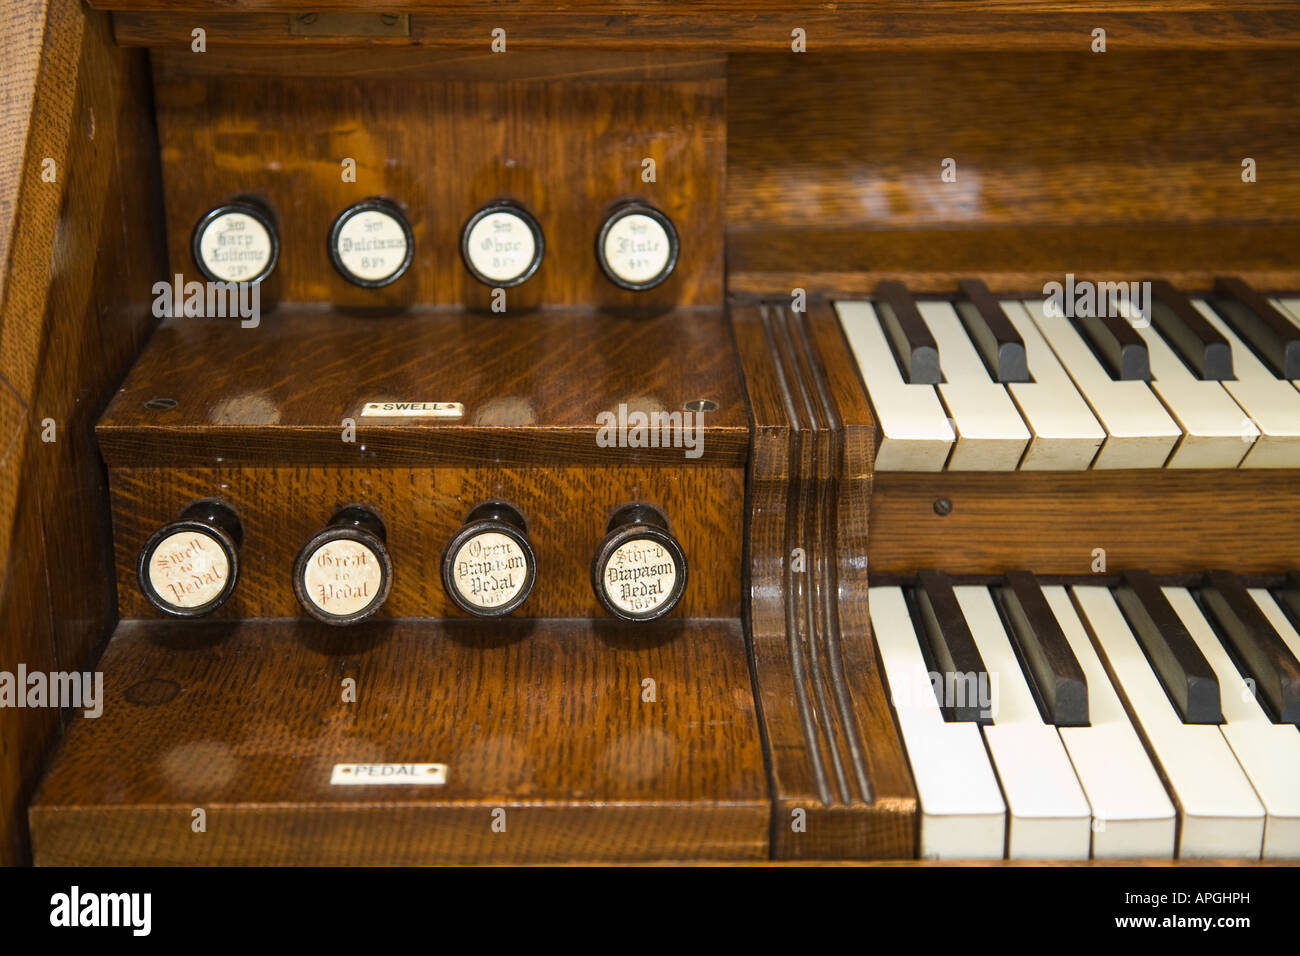 ILLINOIS Rockford Keyboard pulls and stops on wooden organ Midway Village Community Church - Stock Image